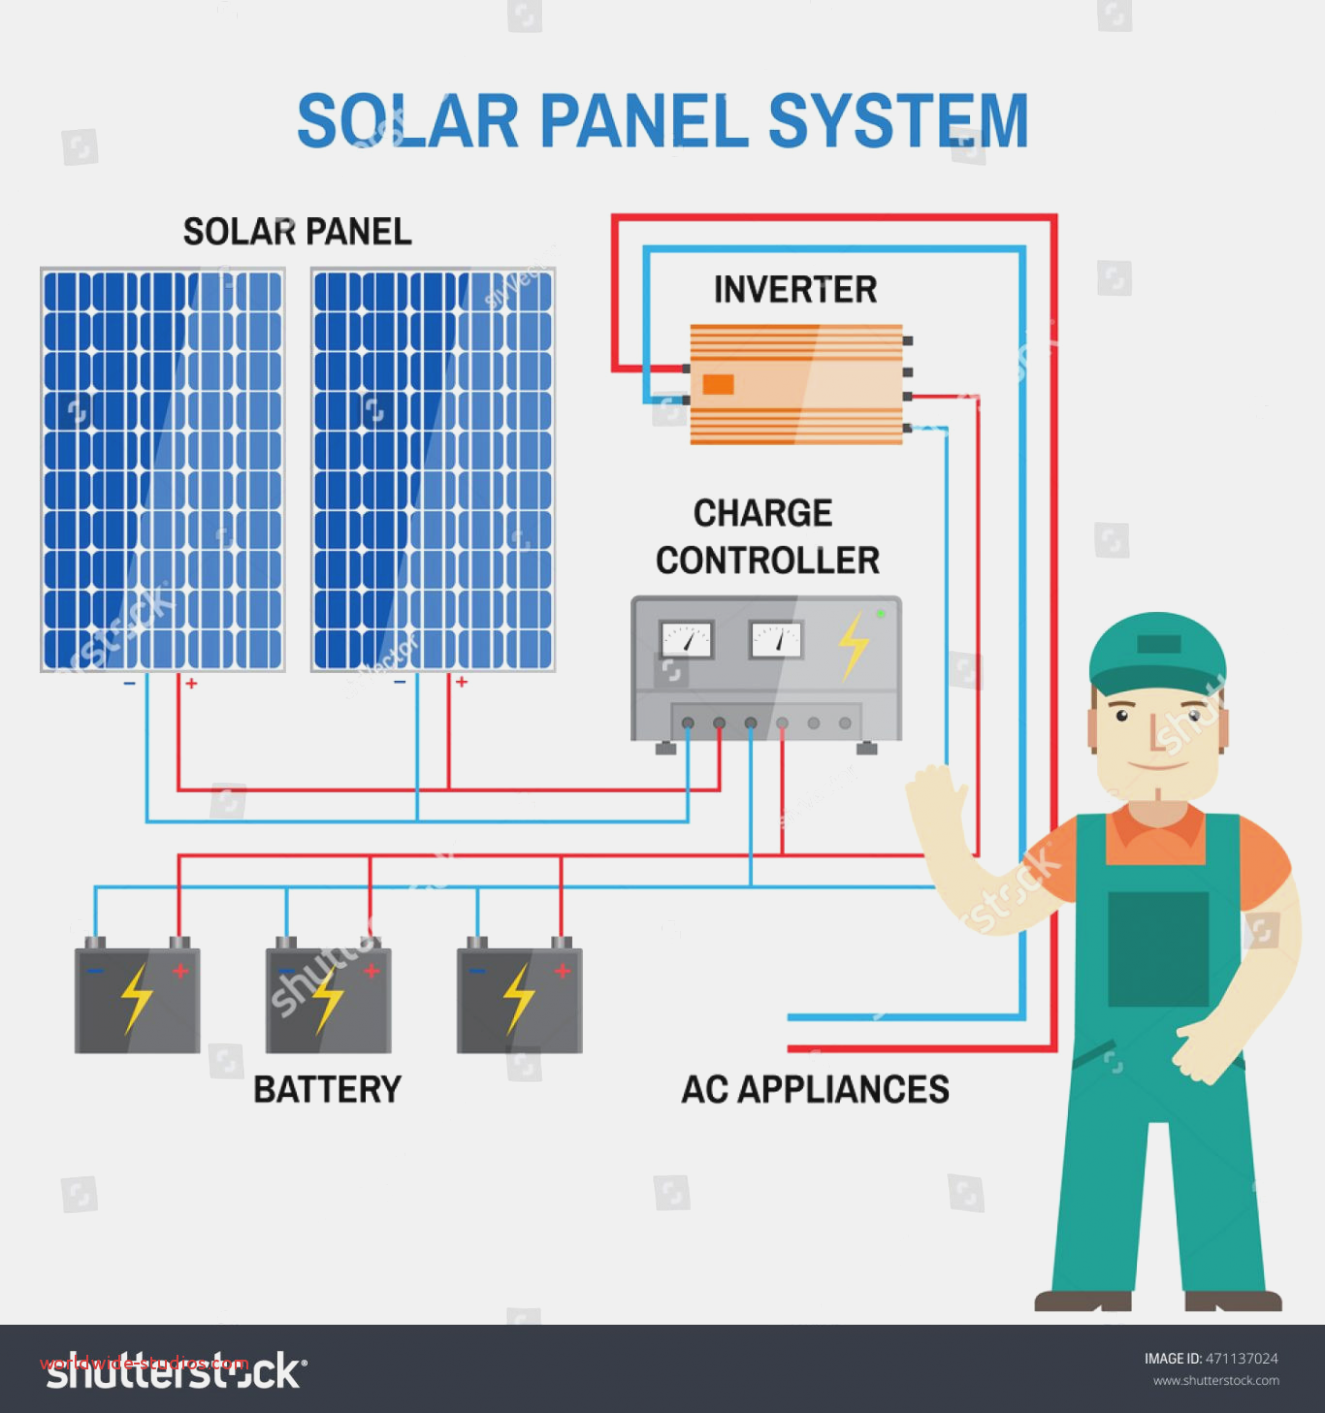 20 Clever Wiring Diagram Of Solar Power System For You Https Bacamajalah Com 20 Clever Wiring Diagram Solar Panels Passive Solar Energy Solar Energy Design